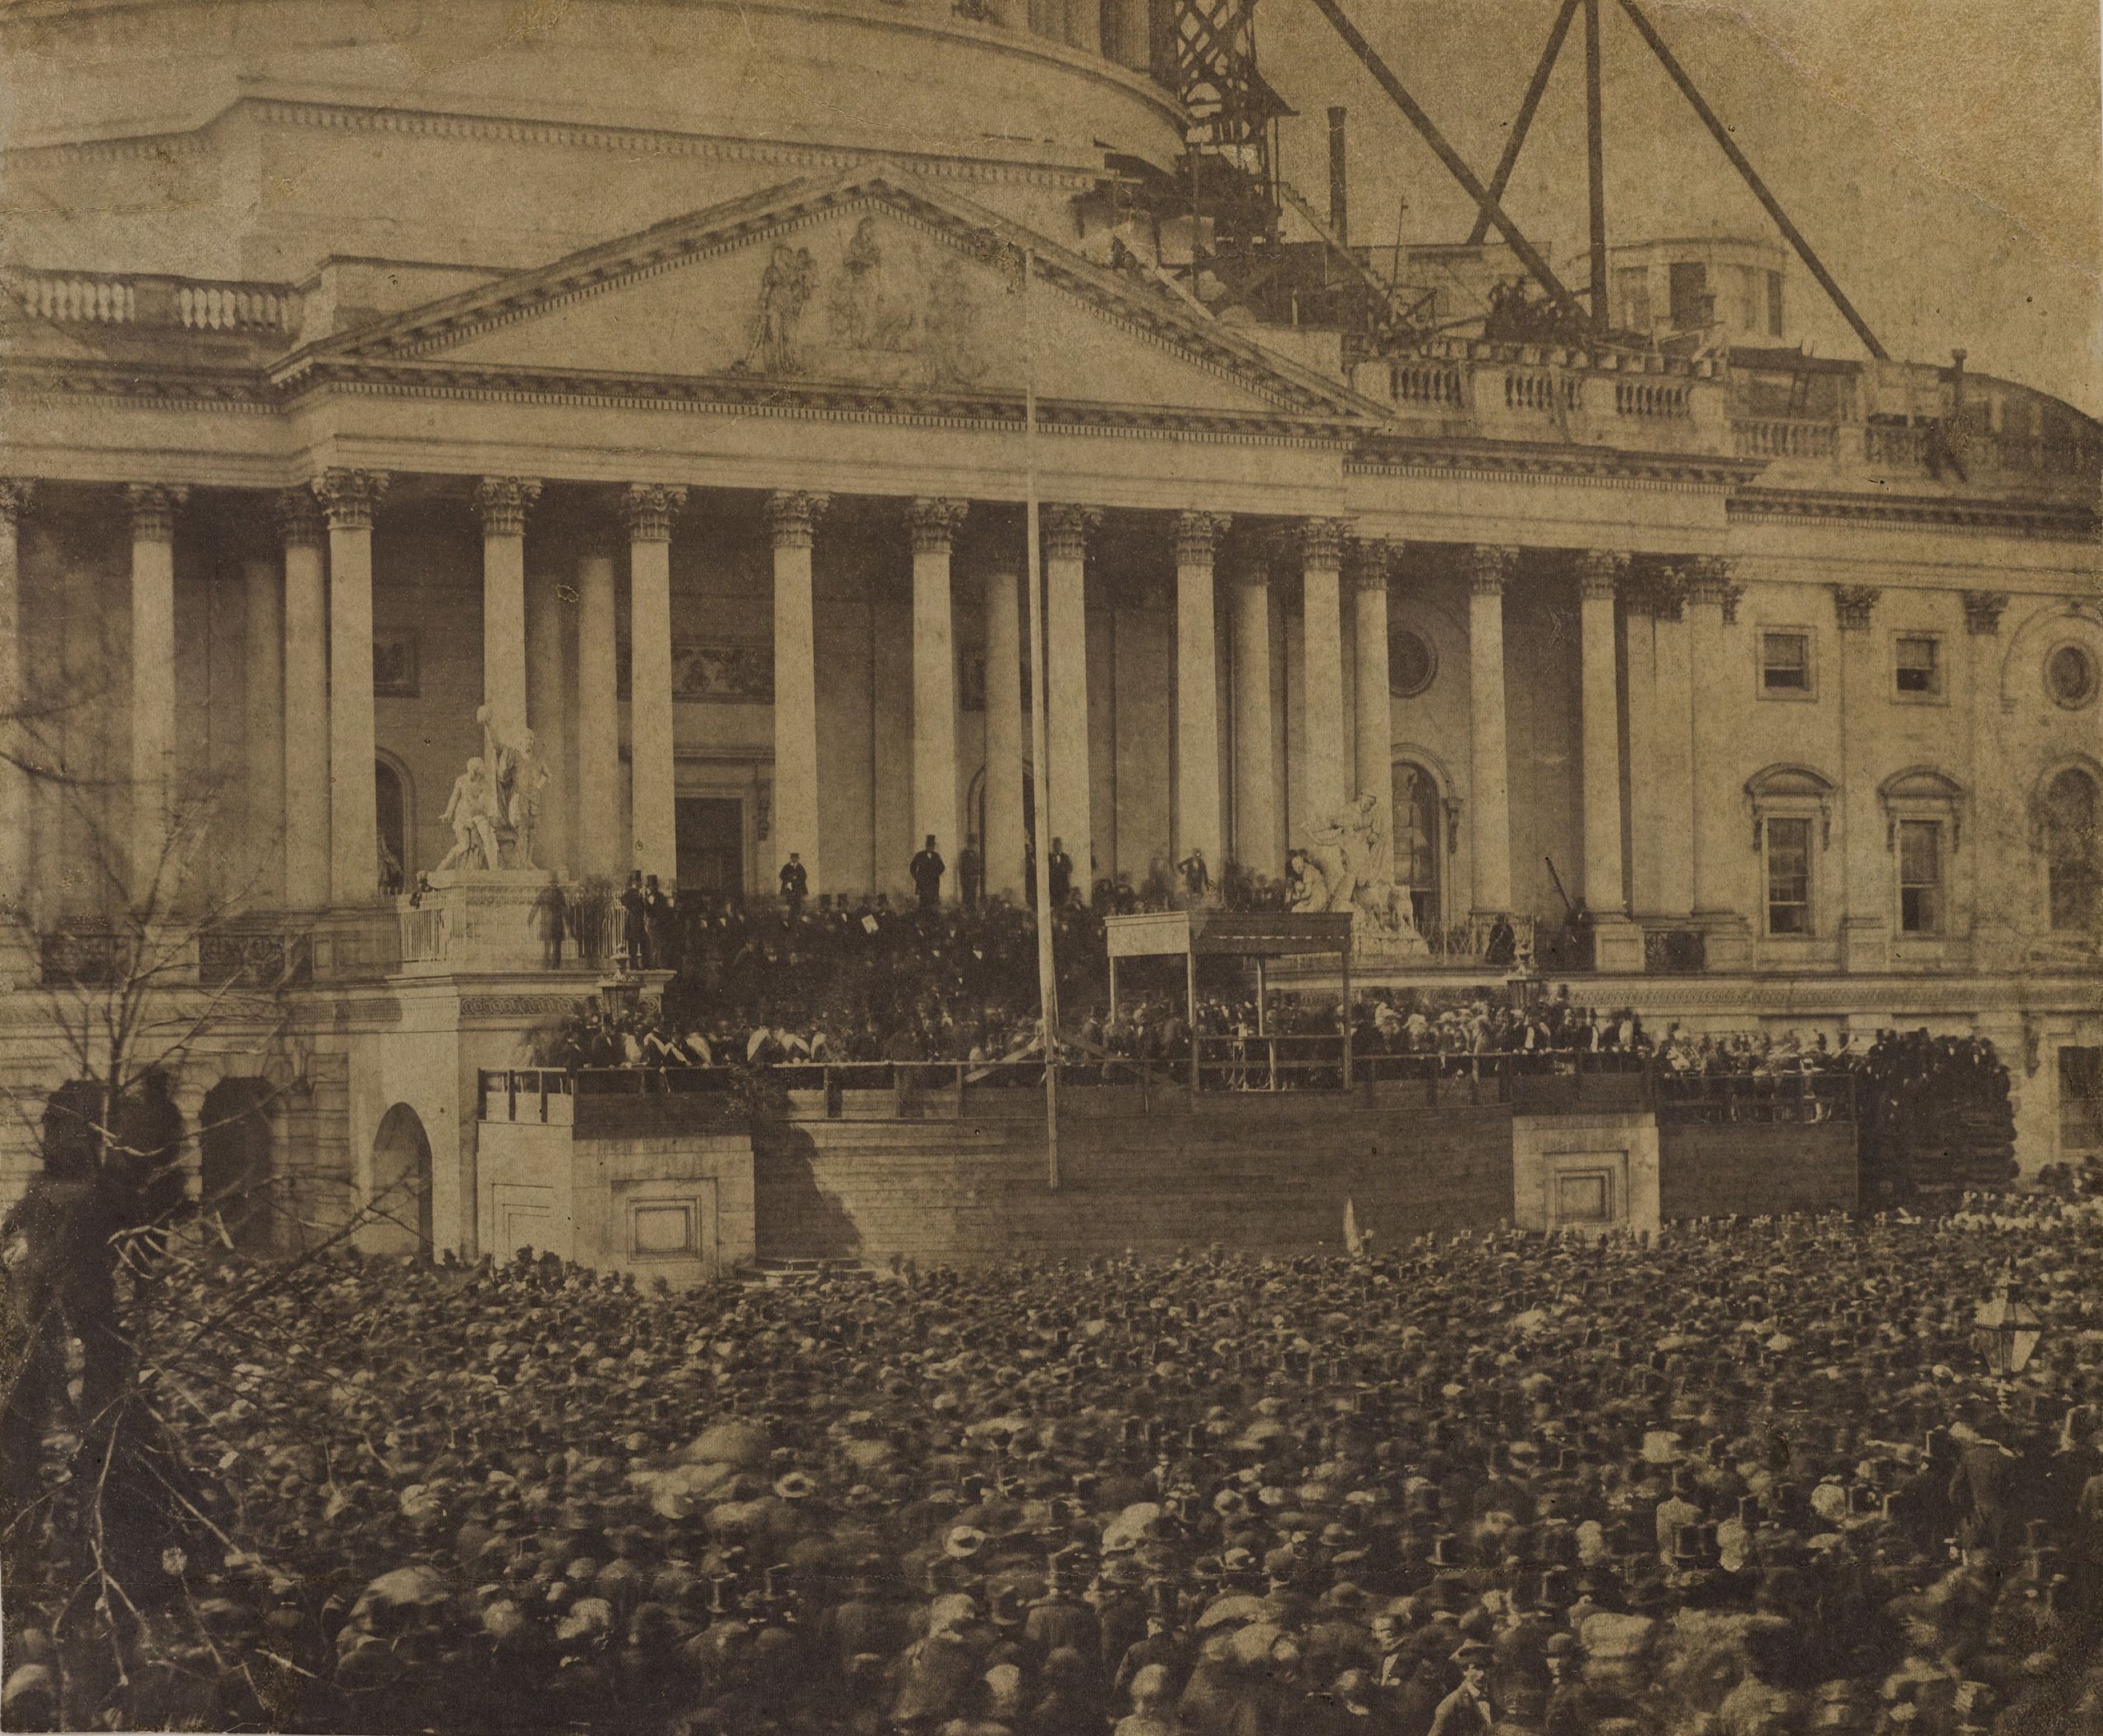 The first inaugural of Abraham Lincoln, March 4, 1861.